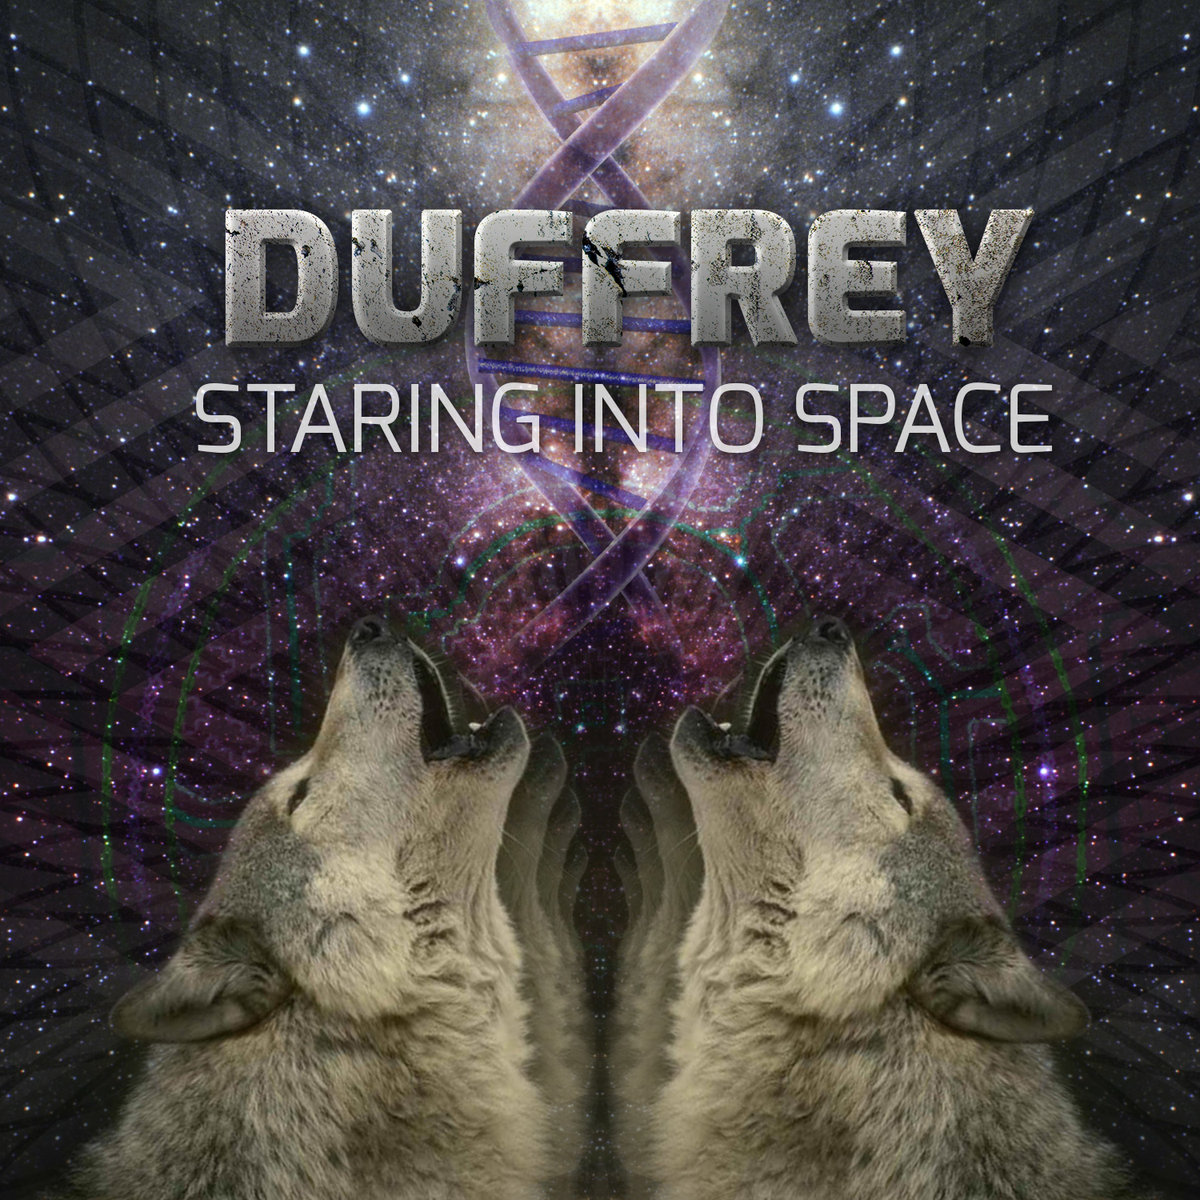 Duffrey - Rigmarole @ 'Staring Into Space' album (bass, breaks)